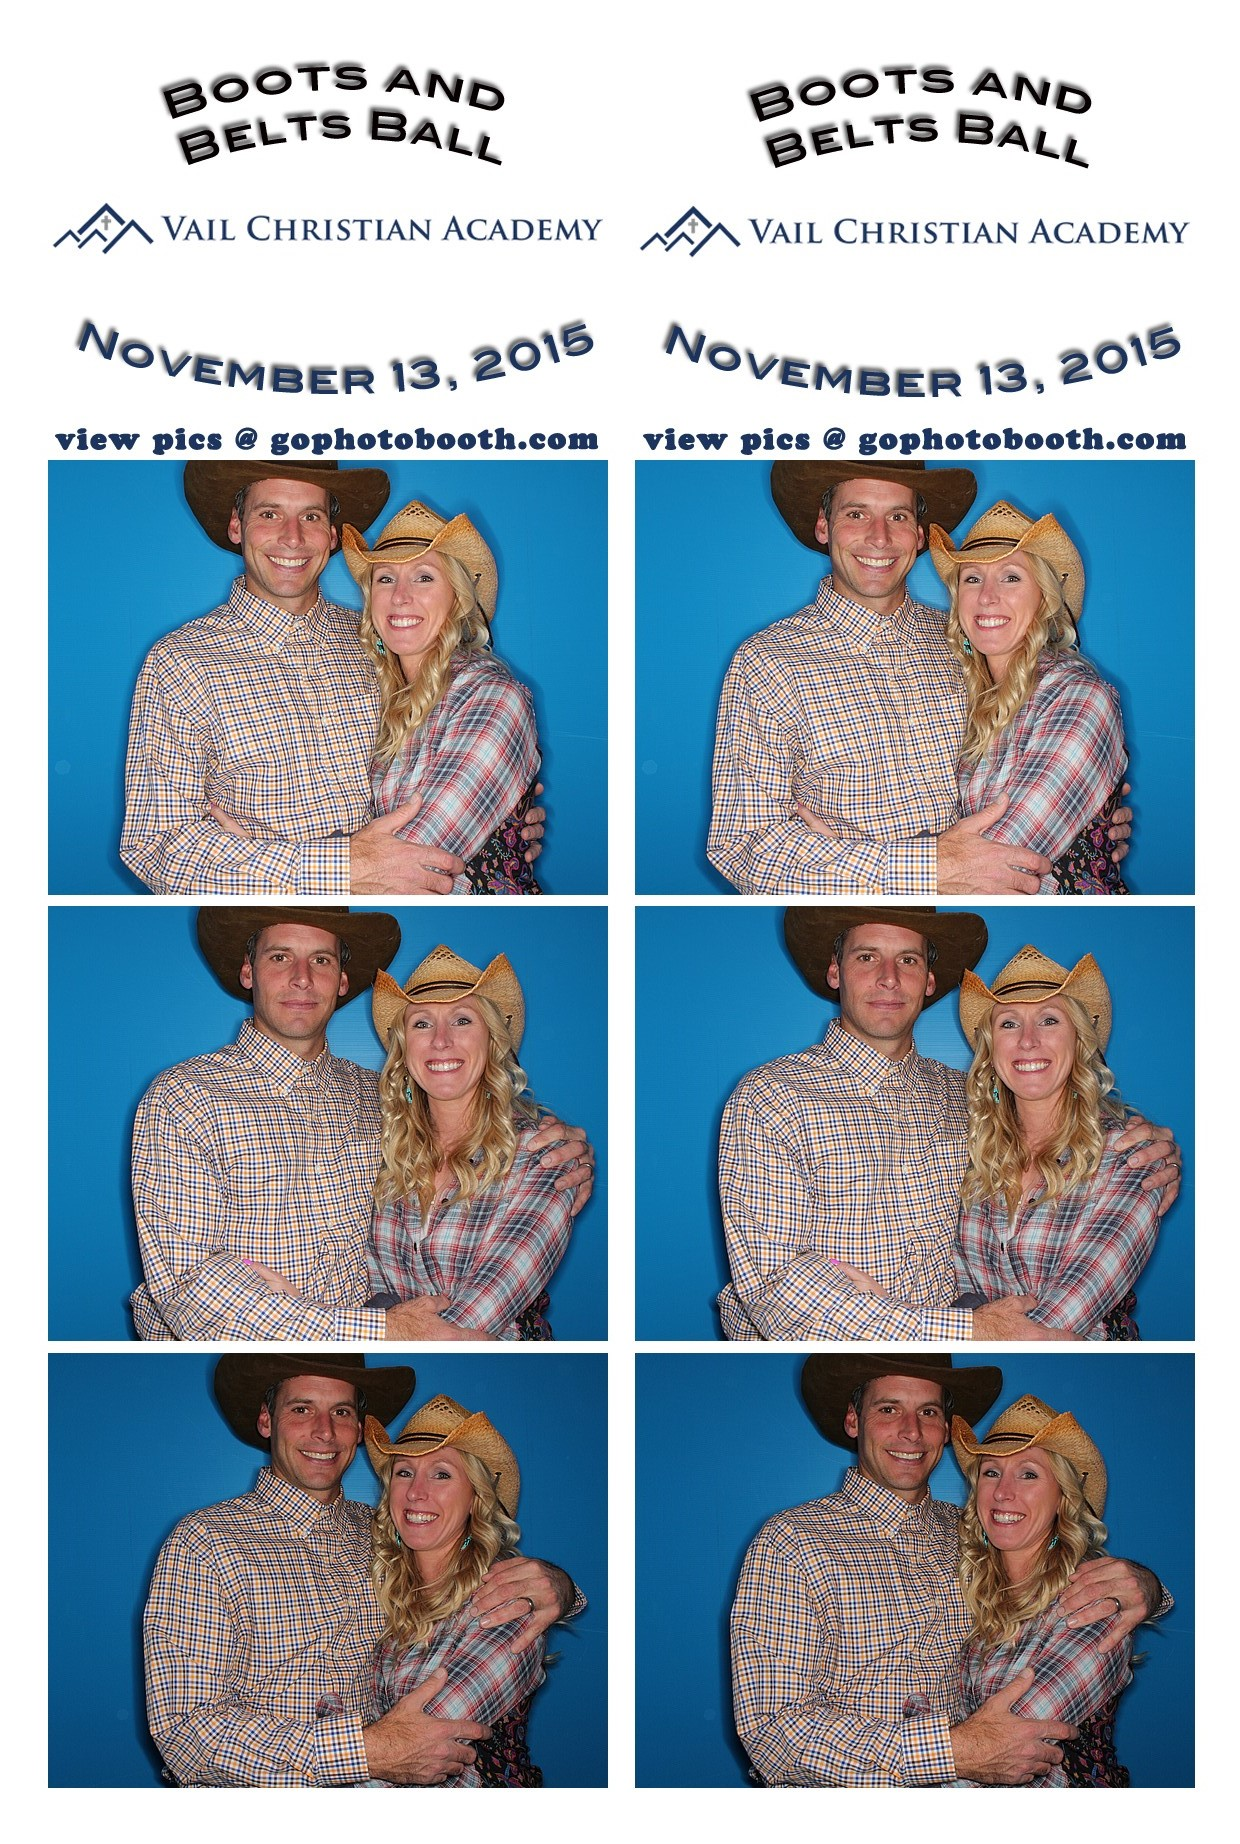 Vail Christian Academy Fundraiser Photo Booth 11/13/15